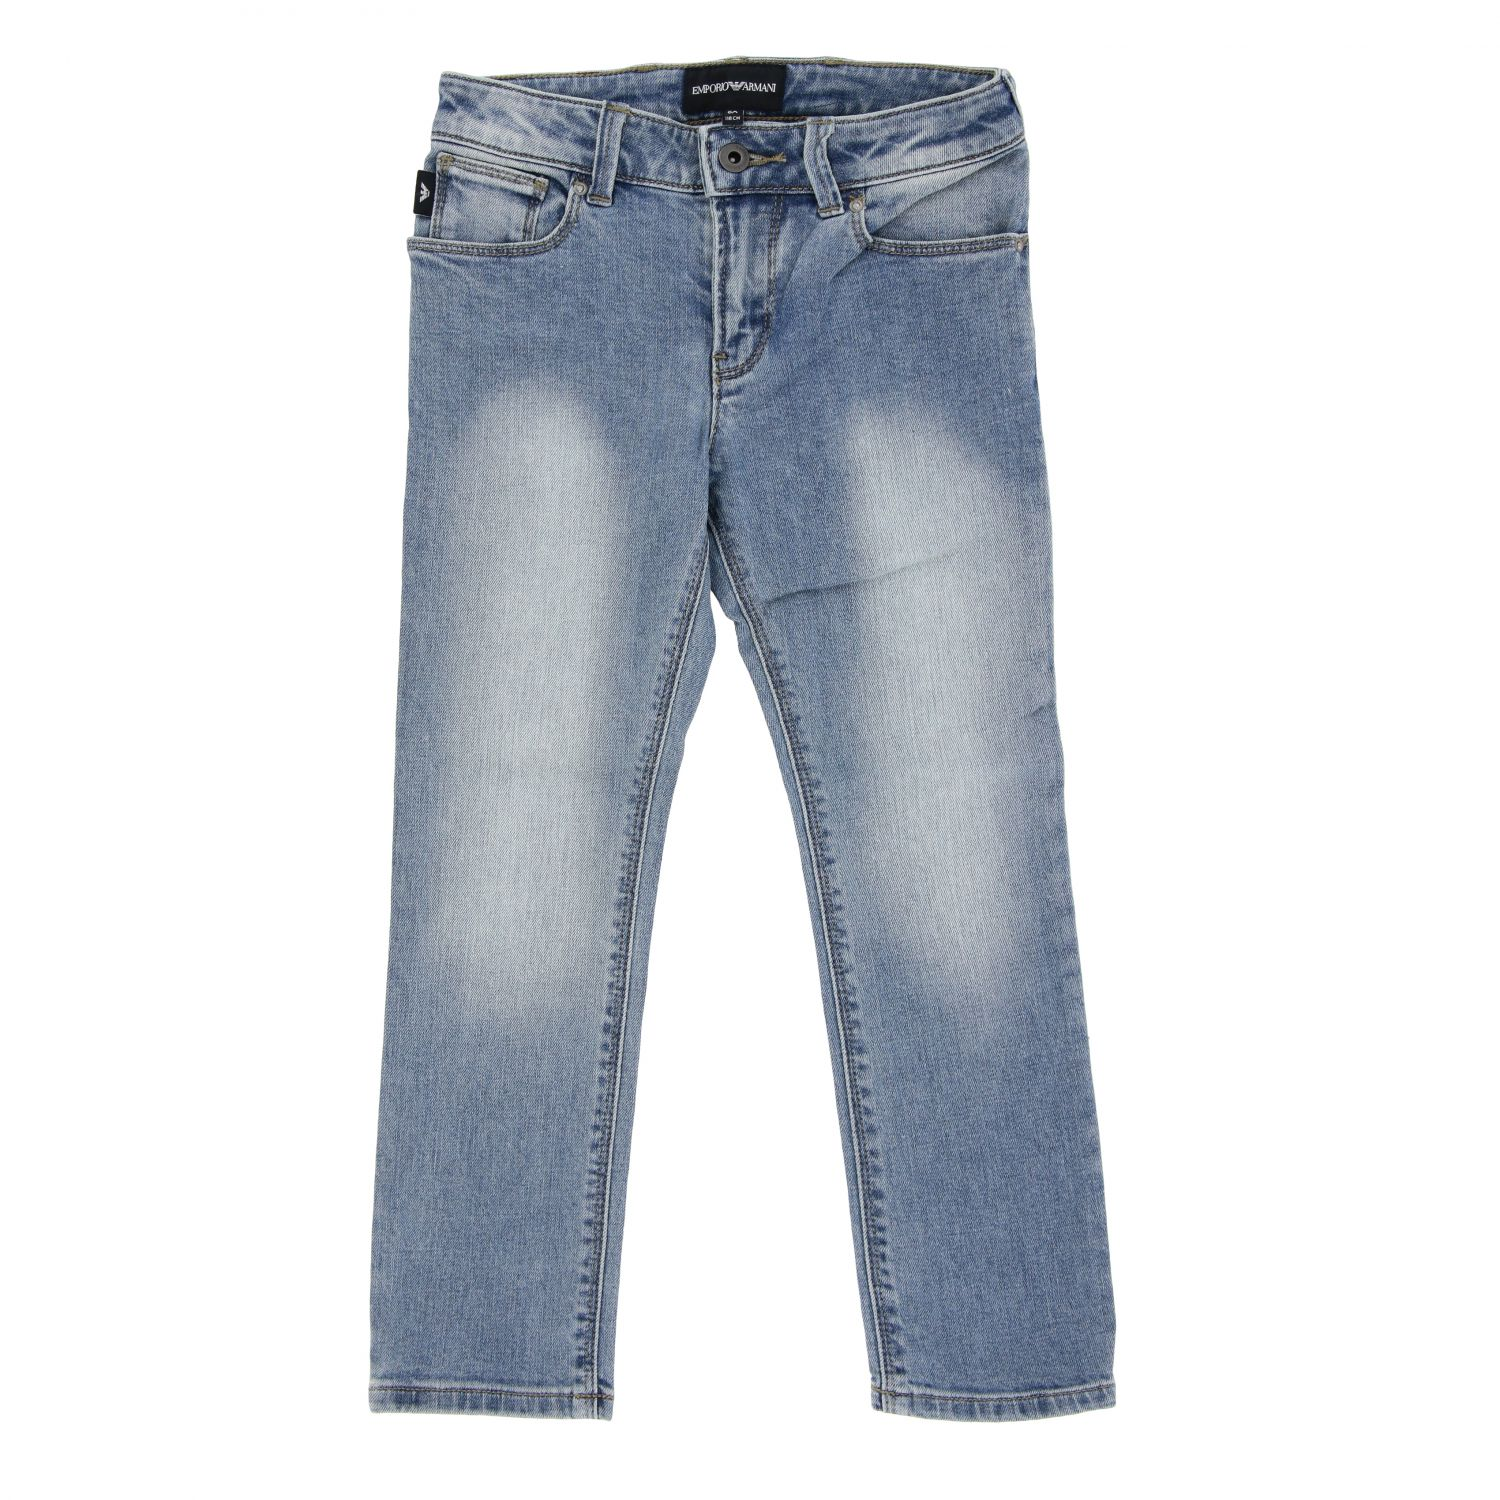 Emporio Armani jeans in used denim stone washed 1